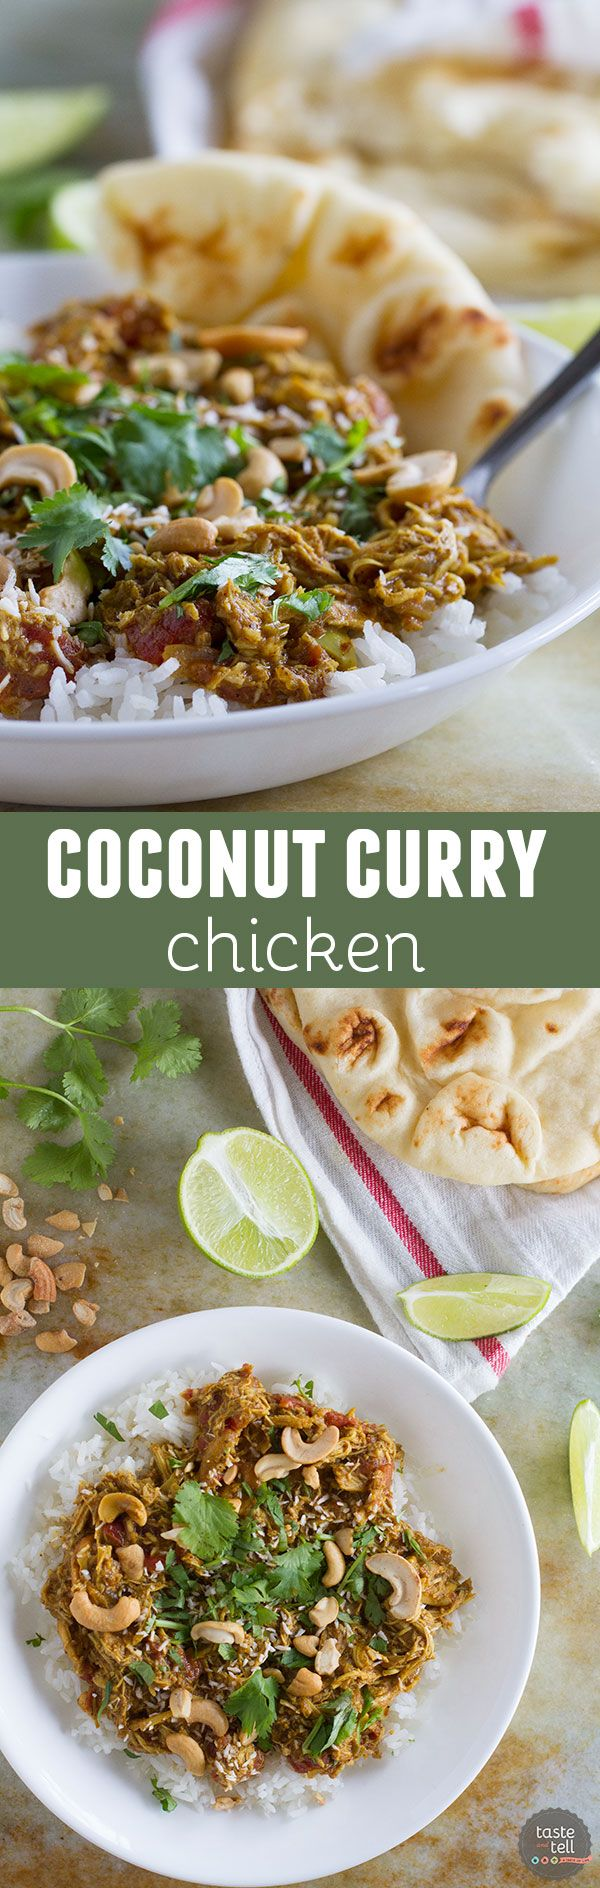 Coconut Curry Chicken is made easy by using cooked rotisserie chicken. This is a great weeknight meal filled with lots of flavor.: